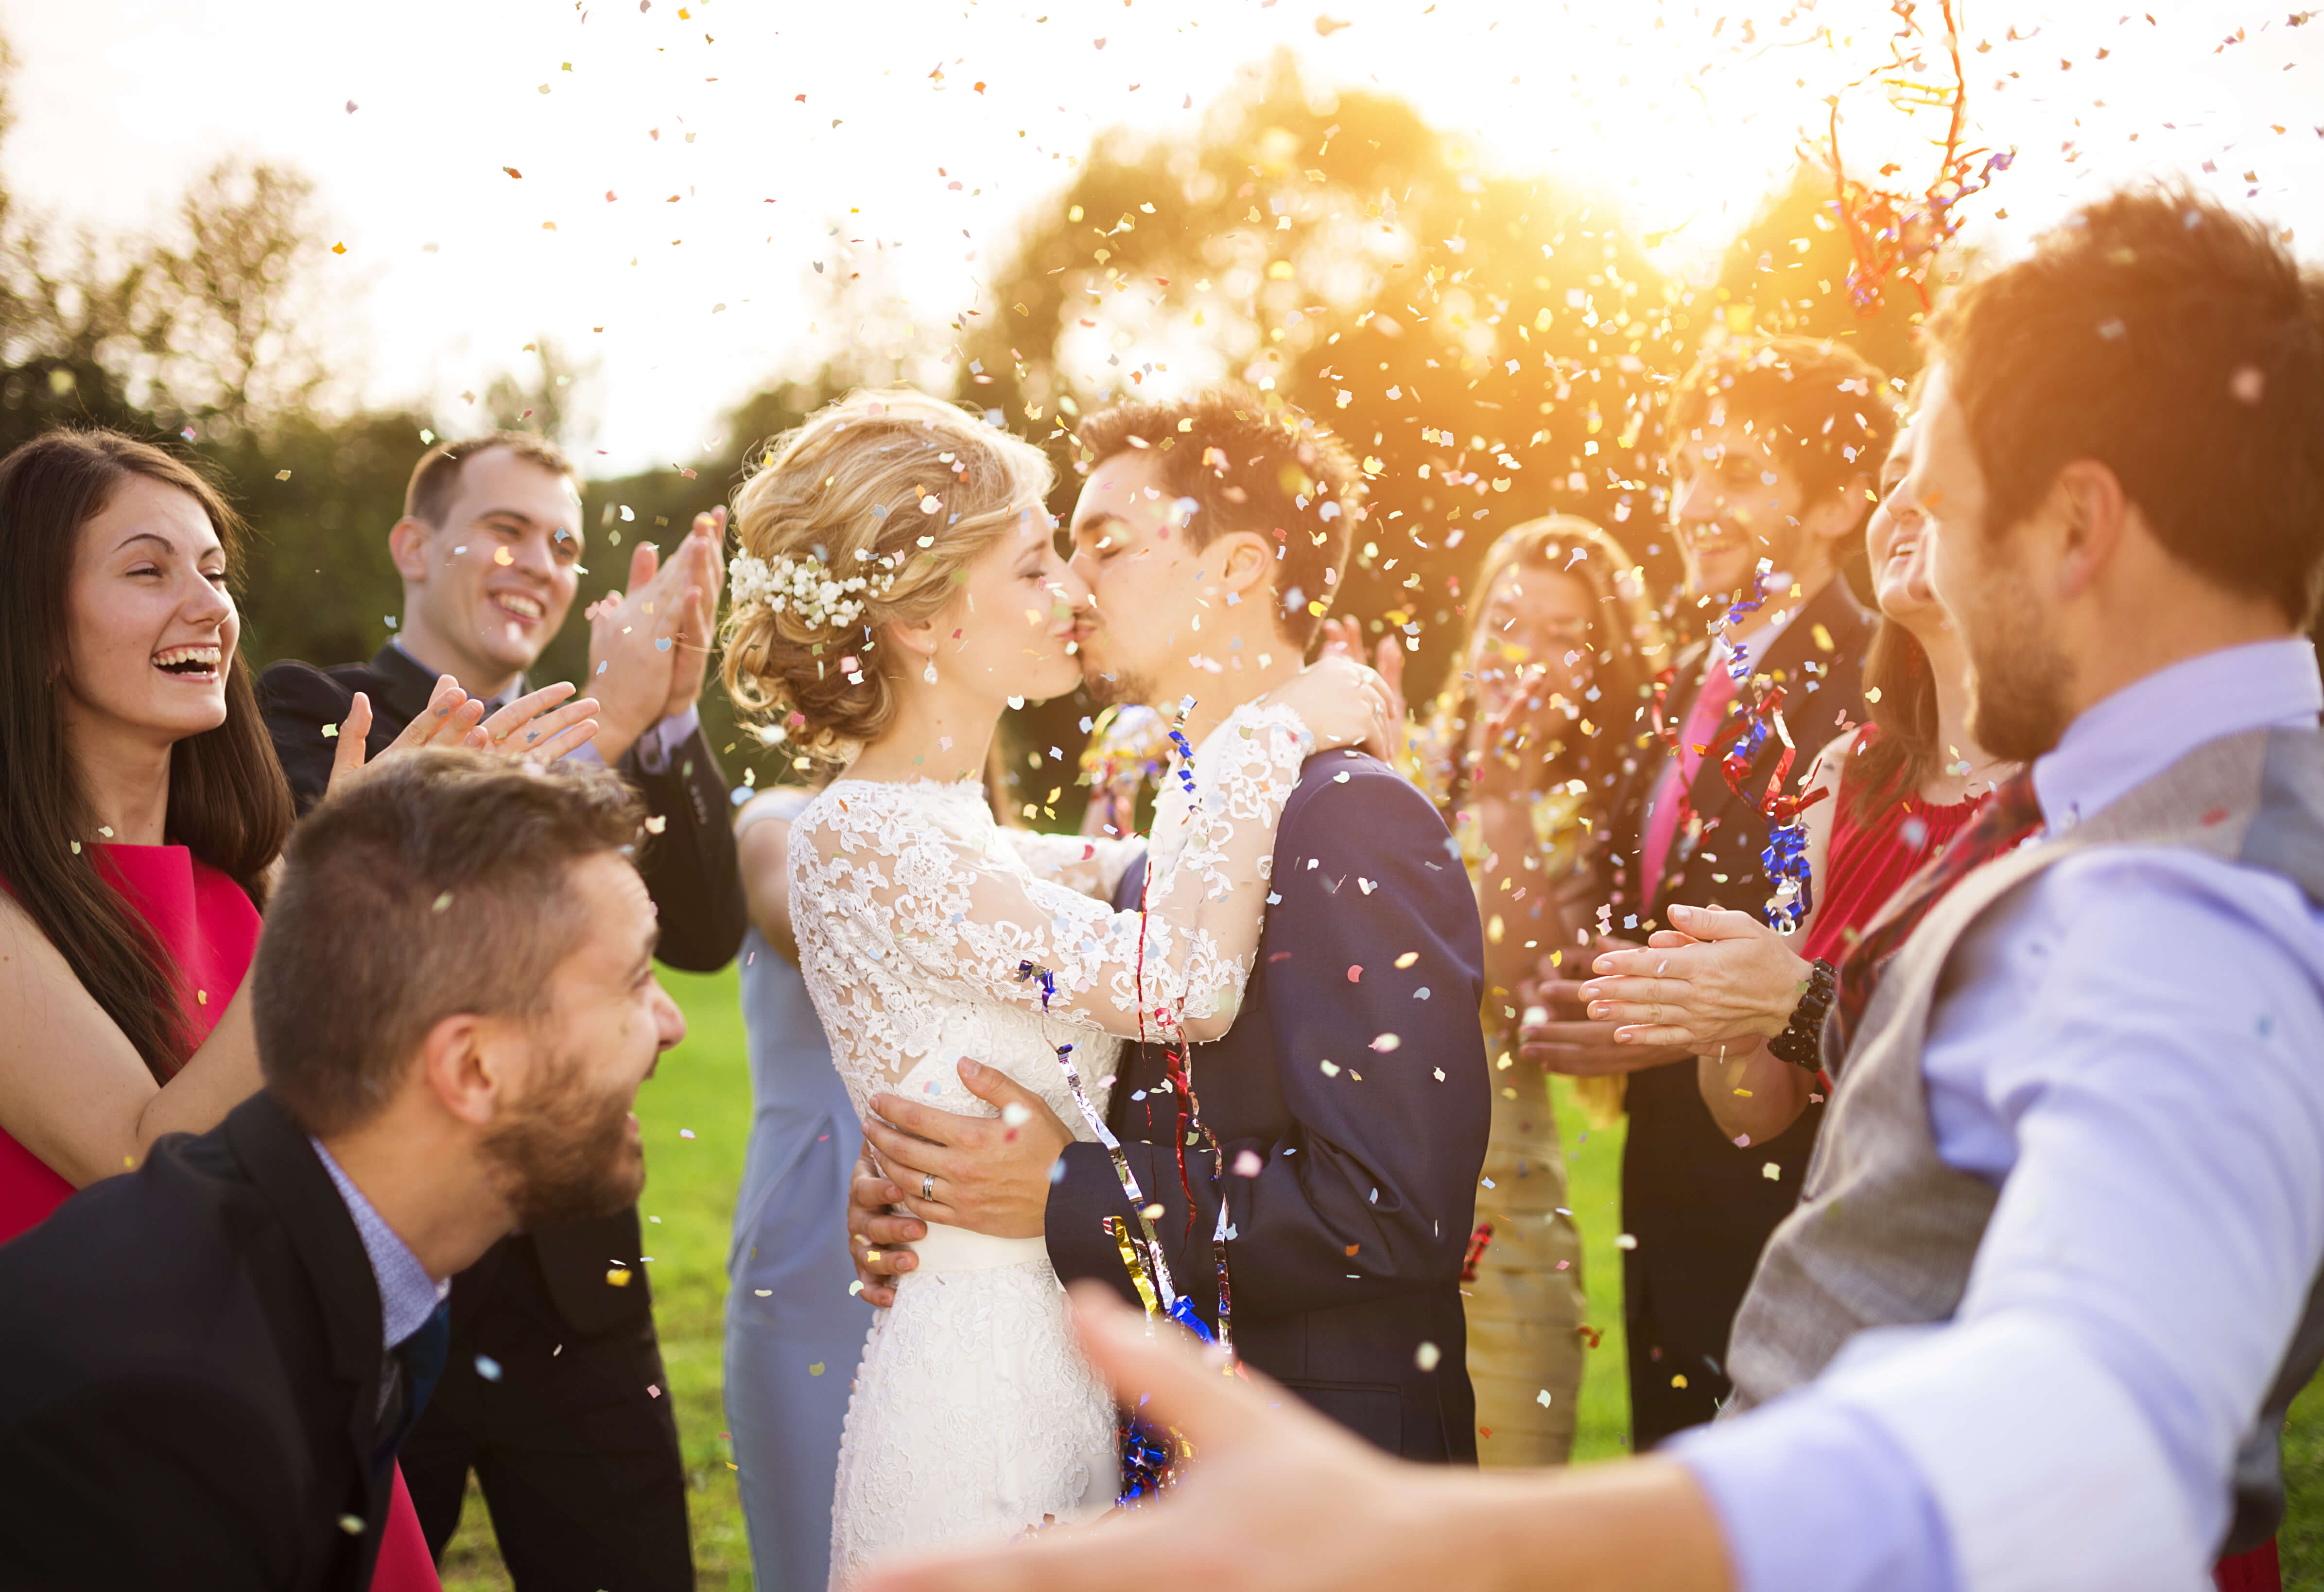 Wedding Traditions Are Not Really Needed